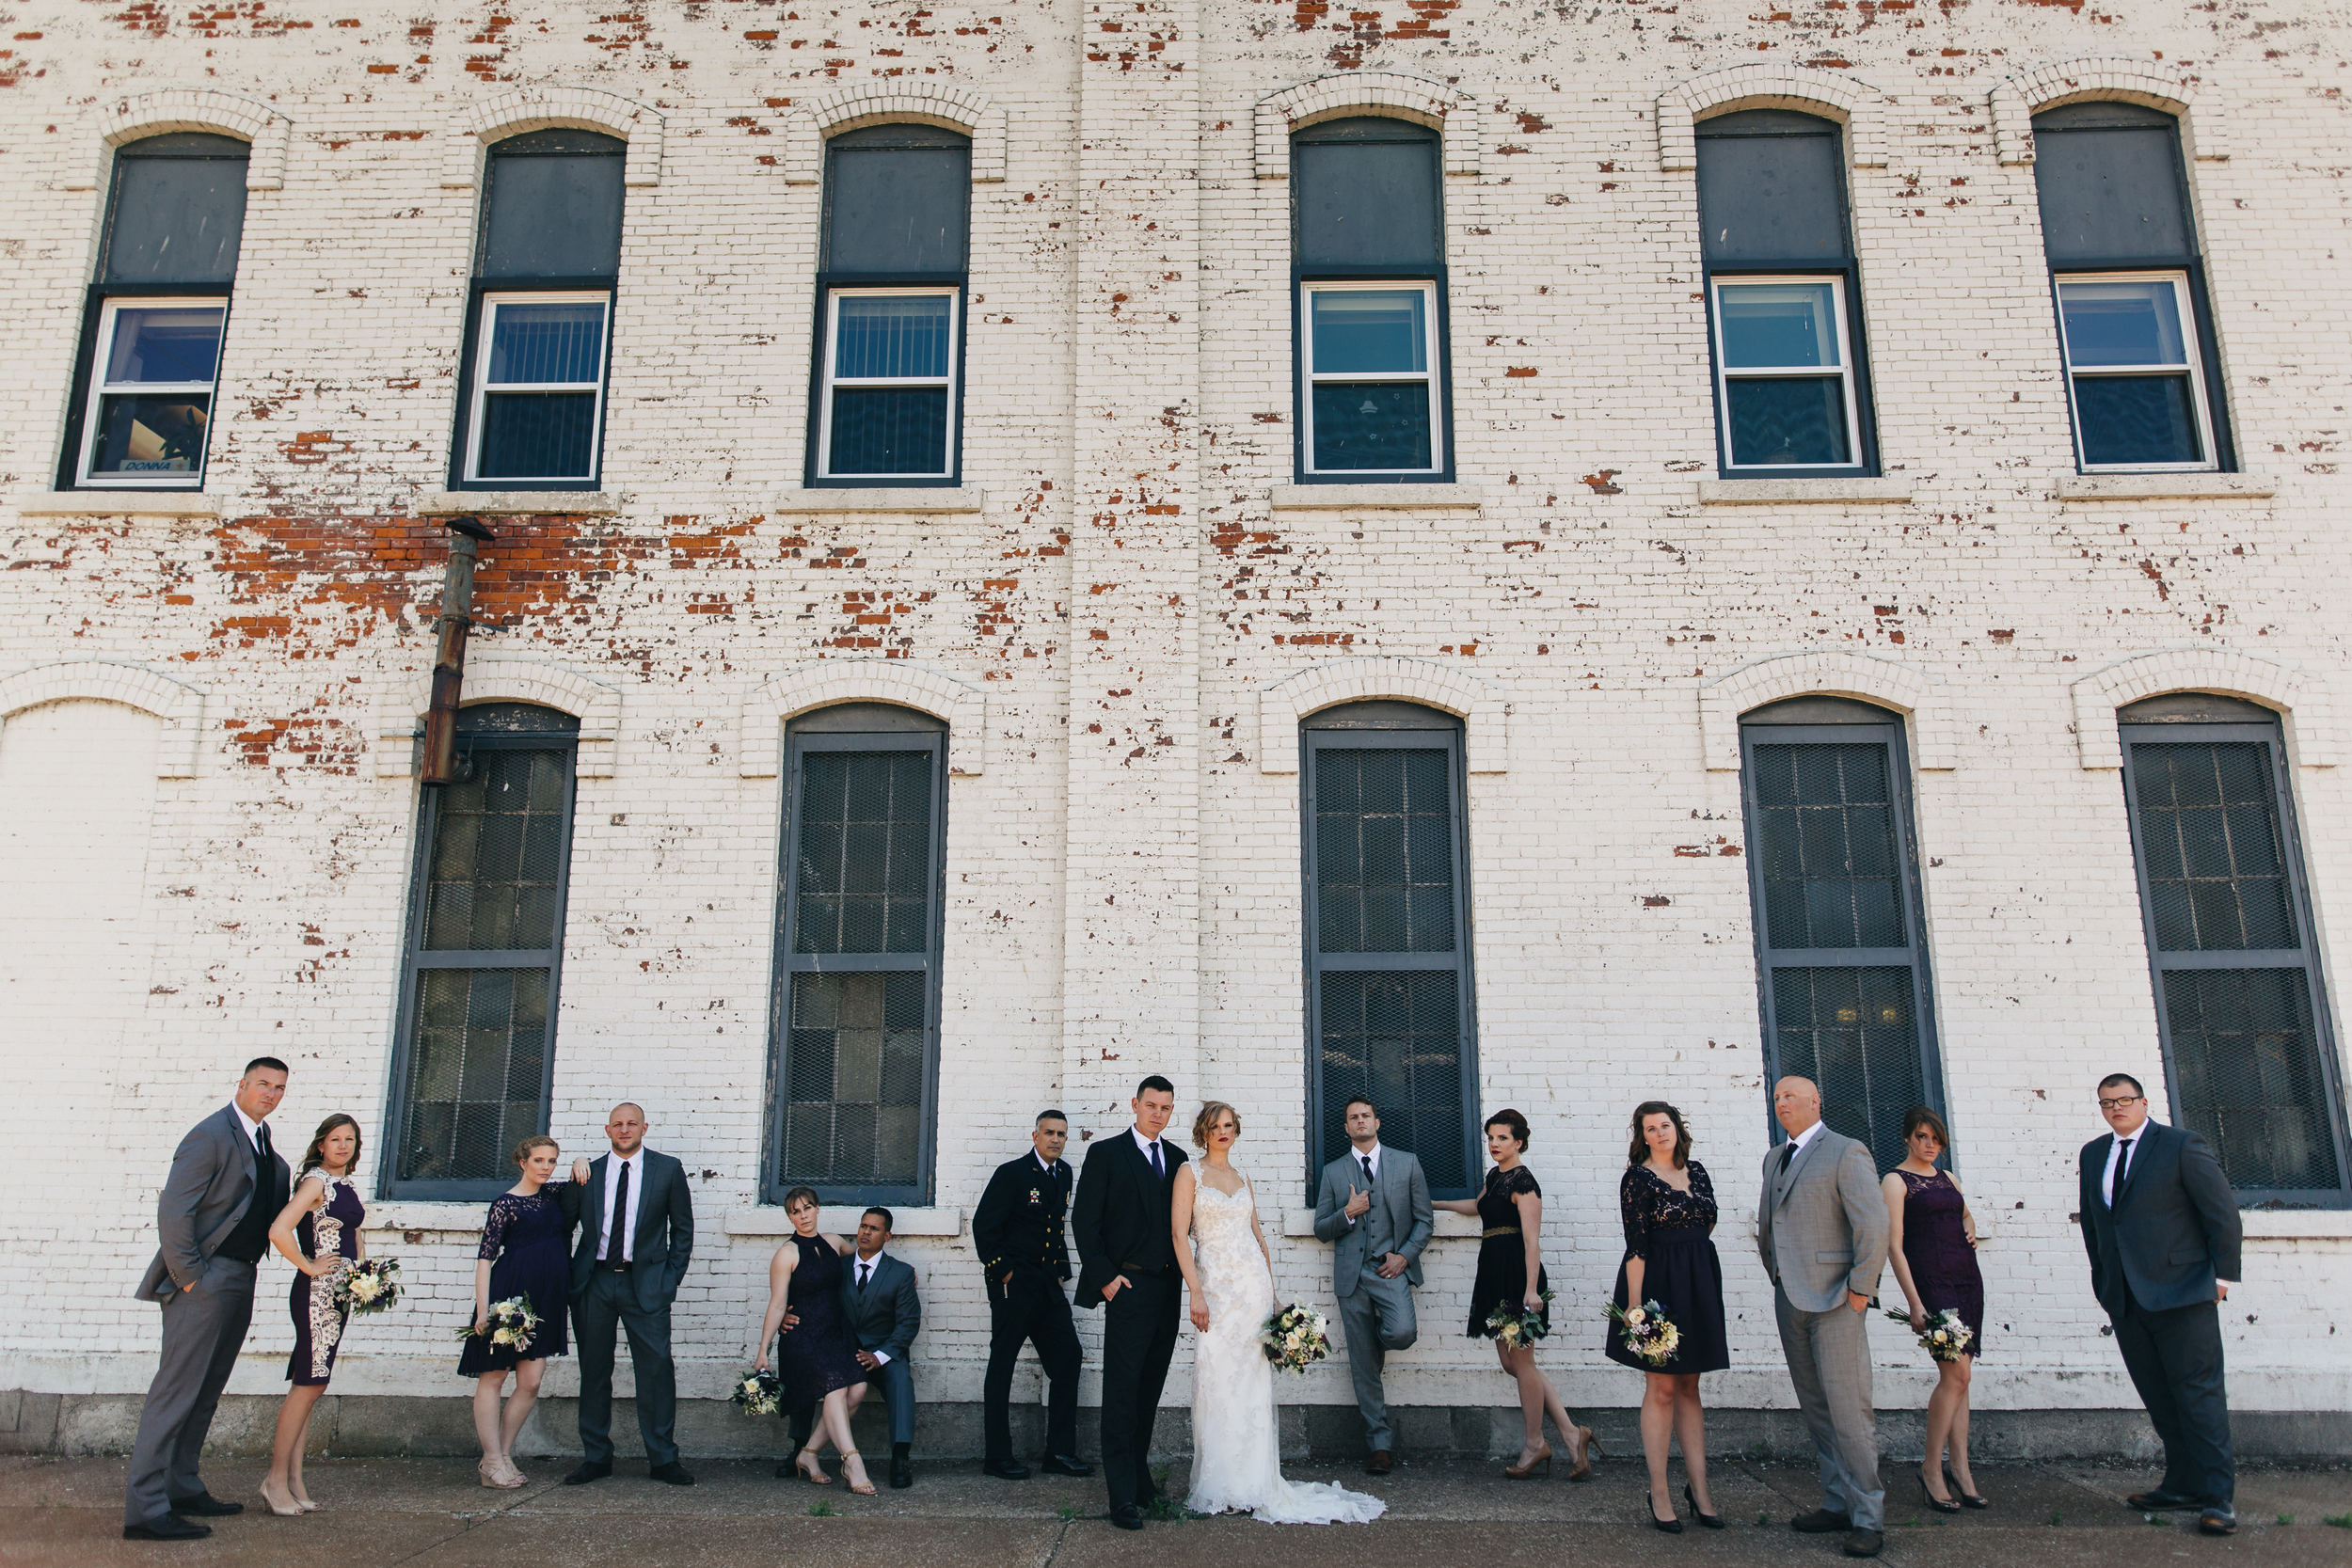 Bridal portrait photography in downtown setting in Sandusky, Ohio.